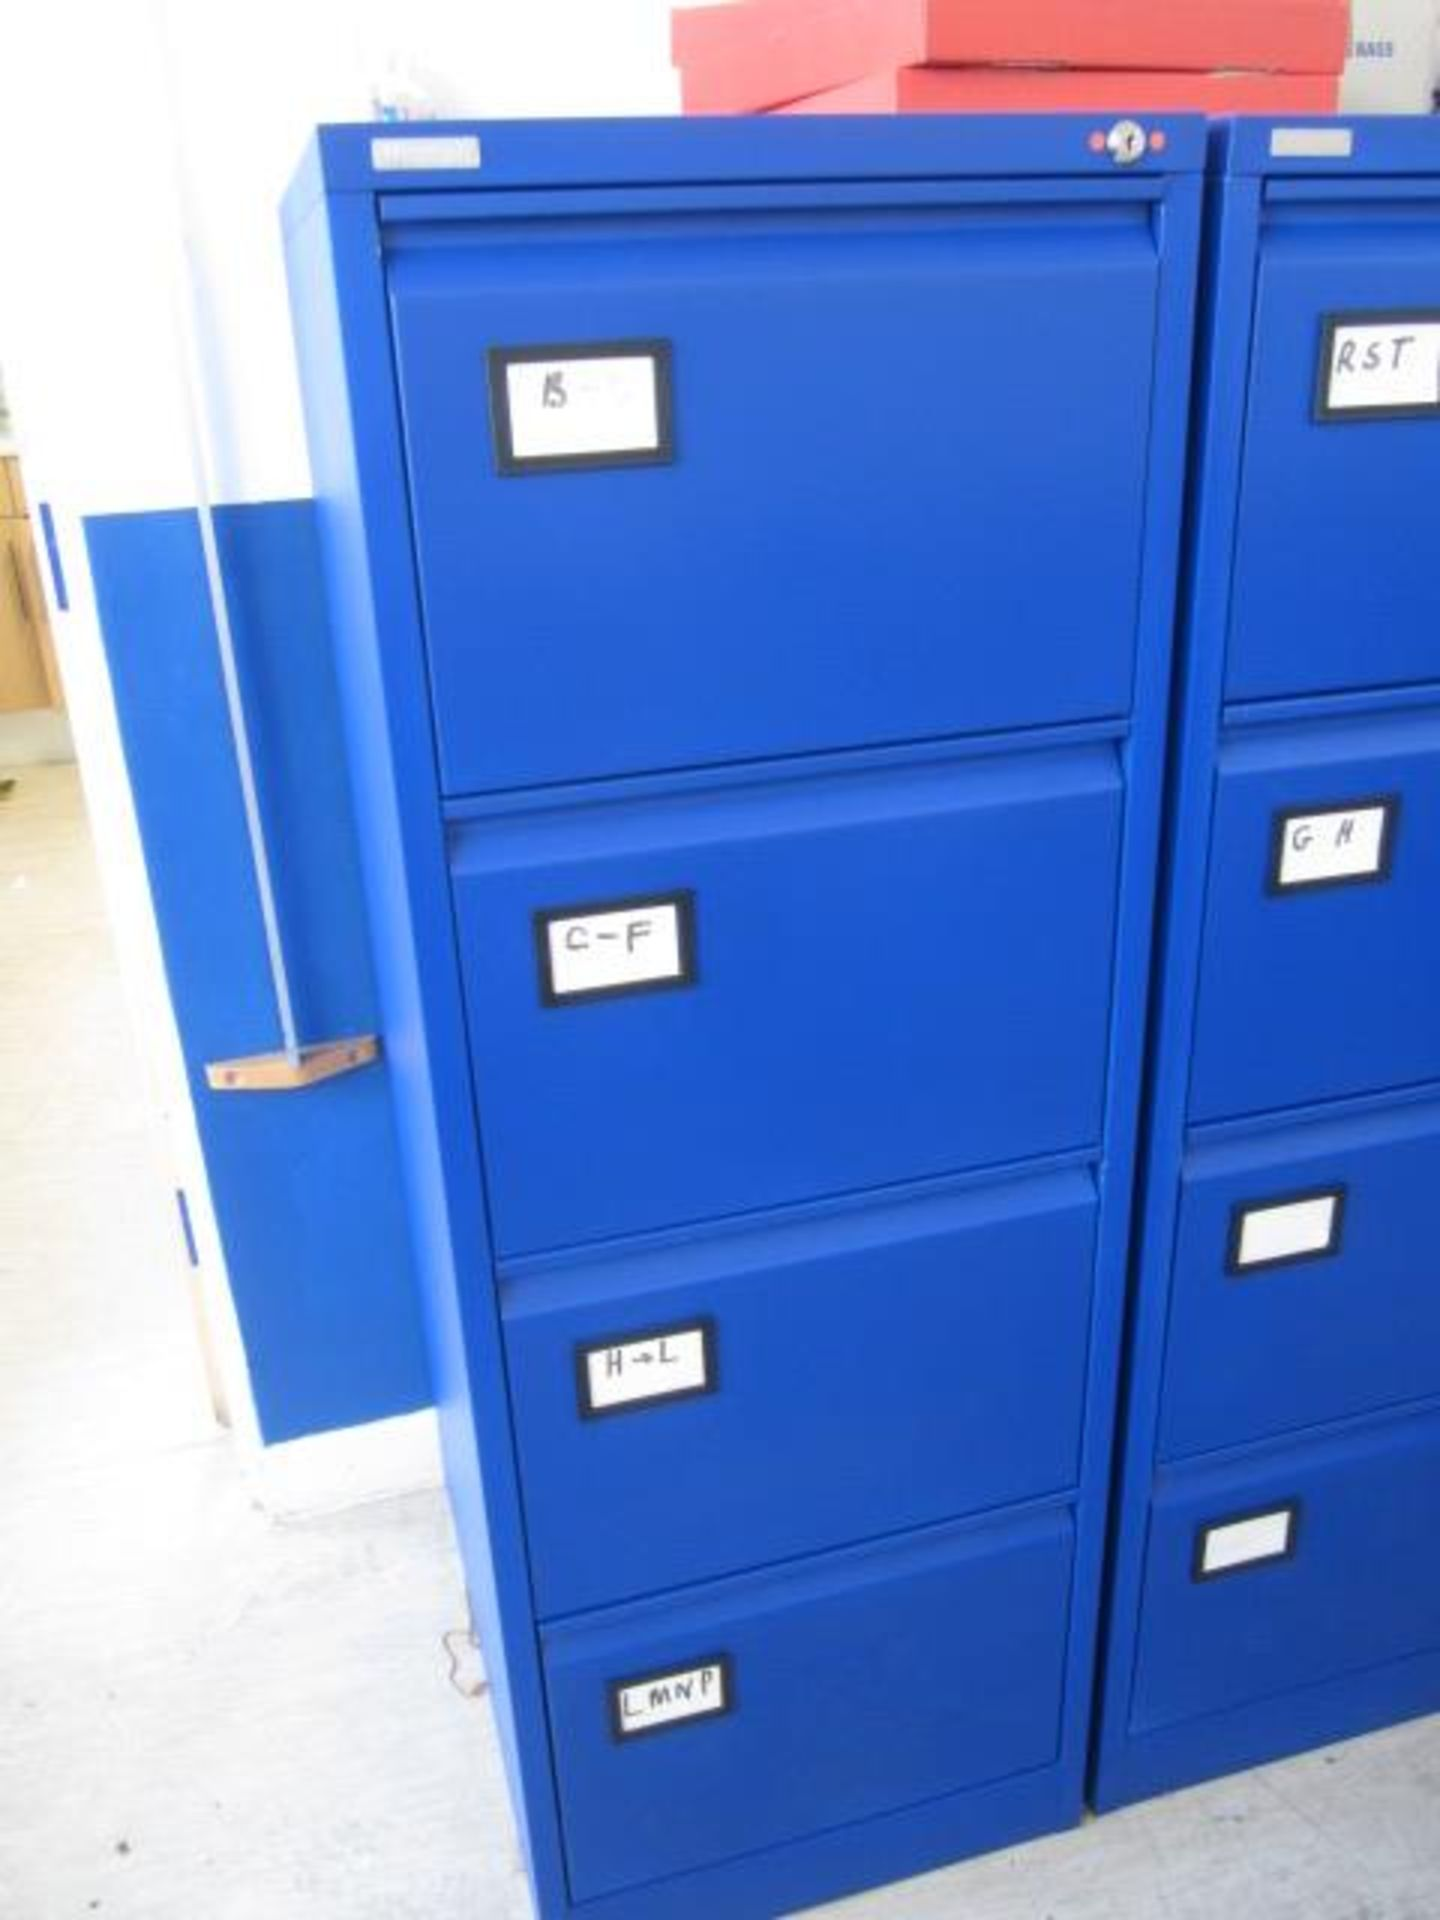 Two metal 4 drawer filing cabinets - Image 2 of 2